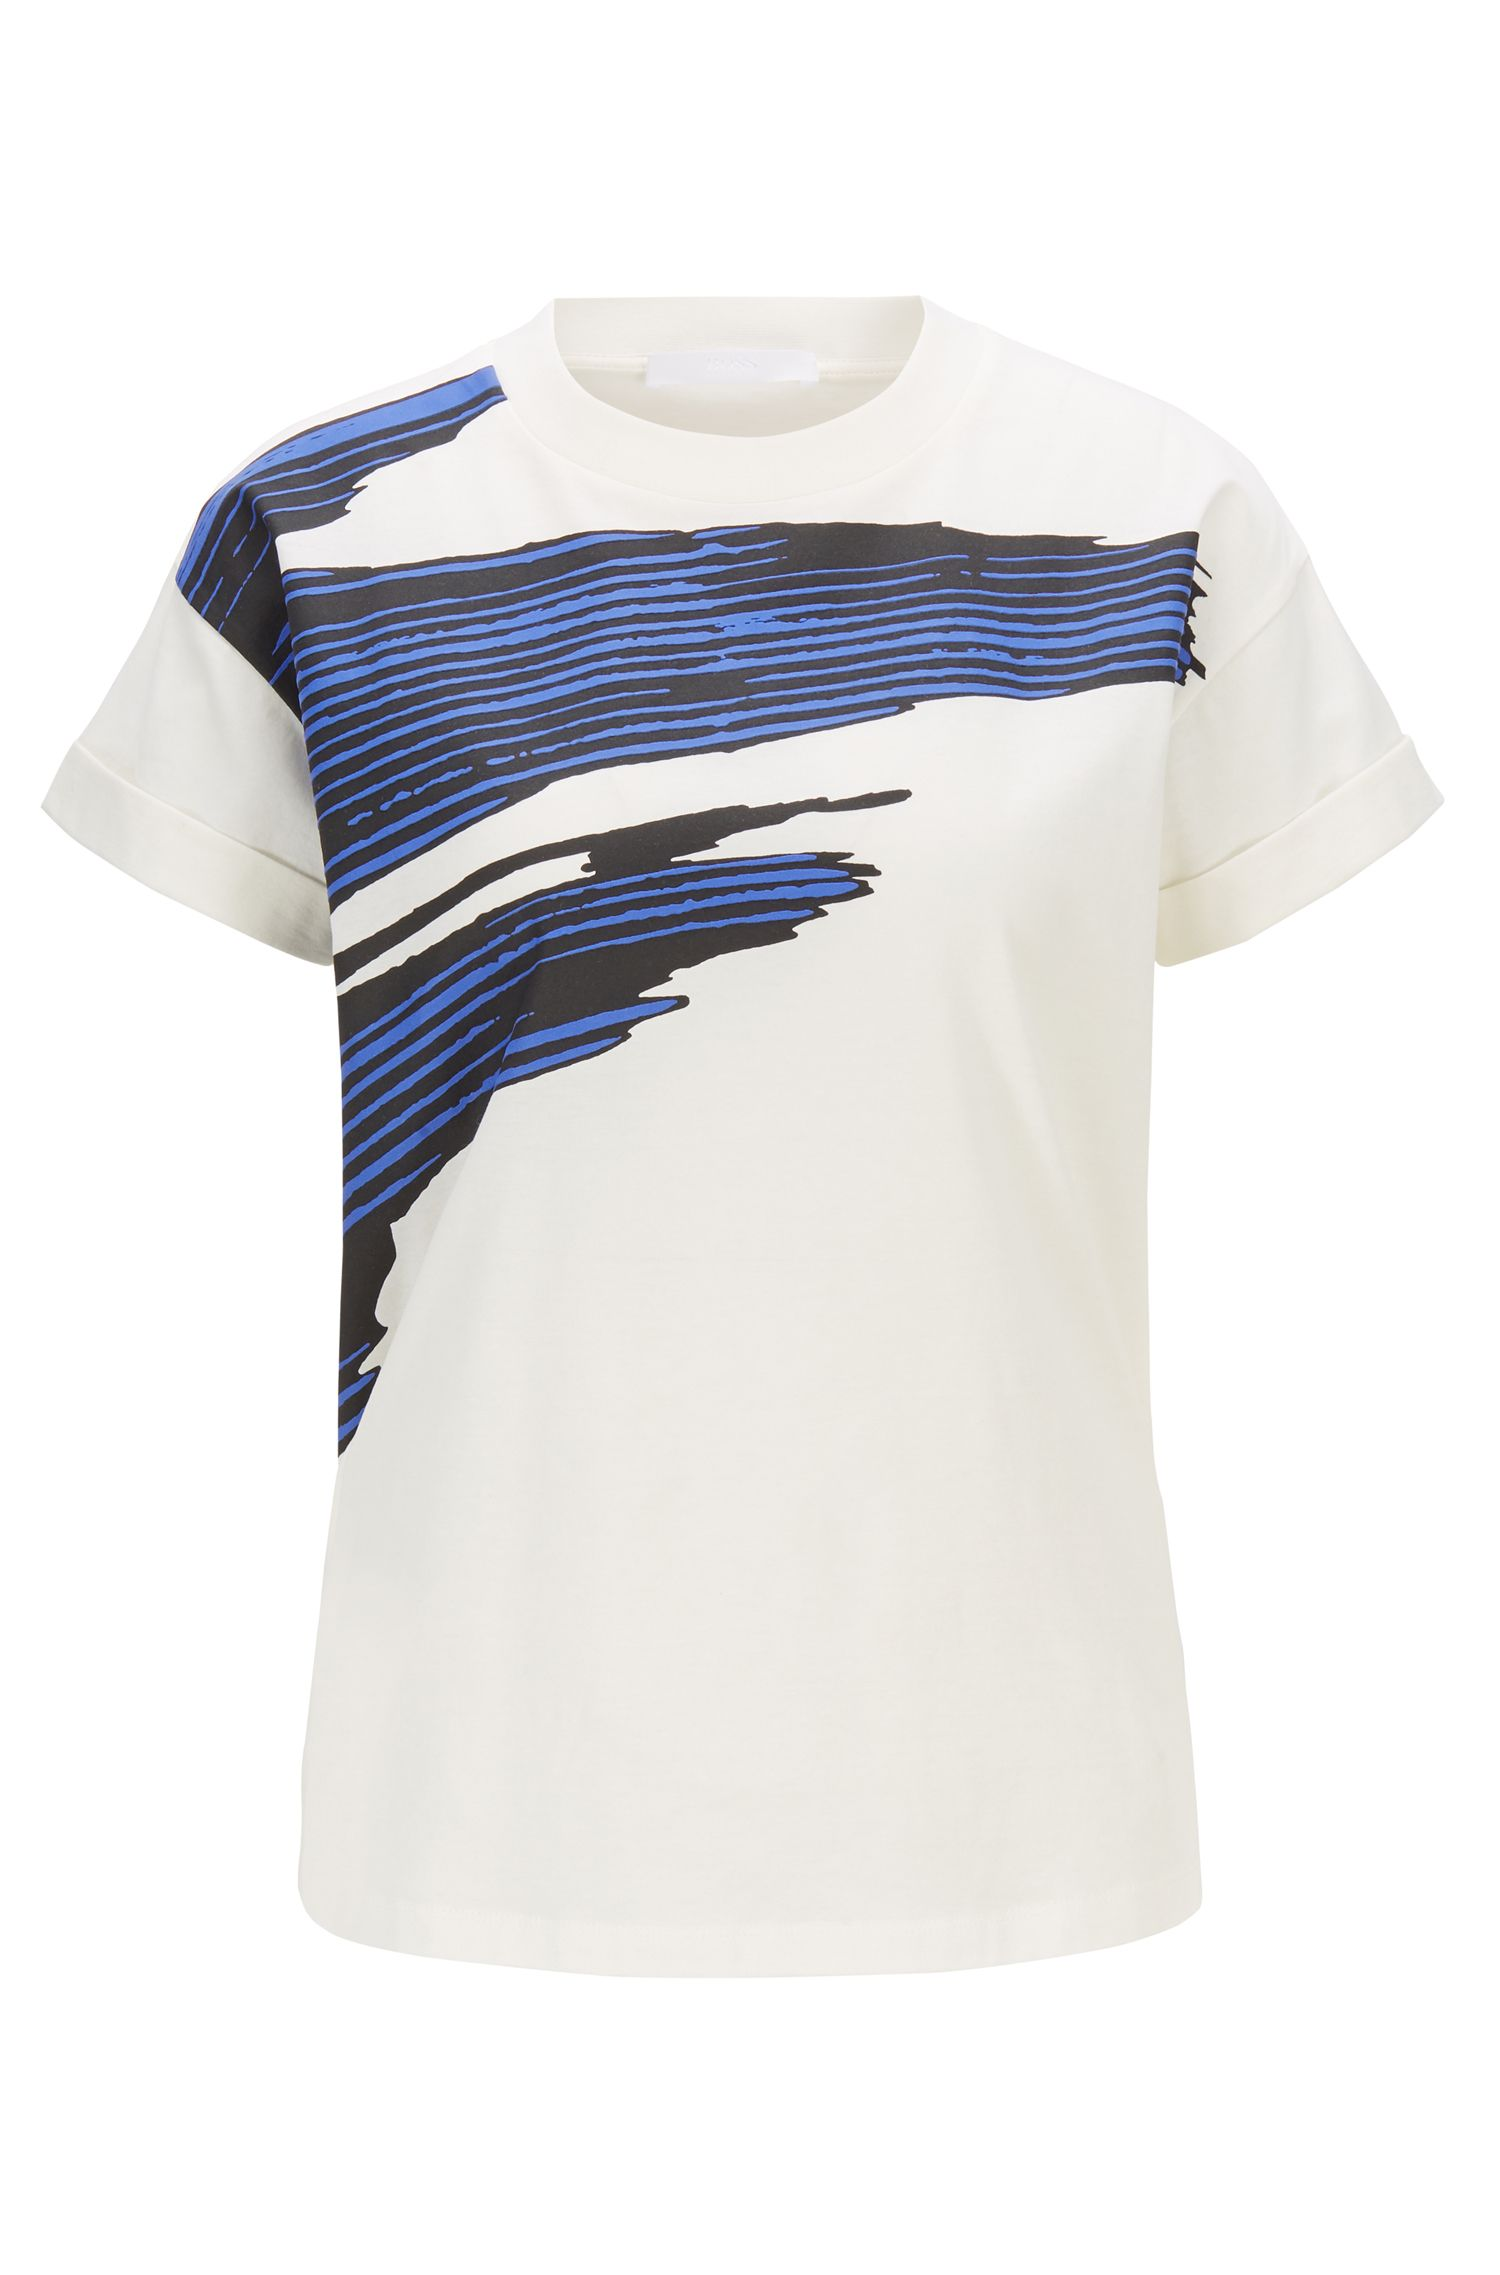 Relaxed-fit T-shirt in mercerized cotton with 3D print, Patterned